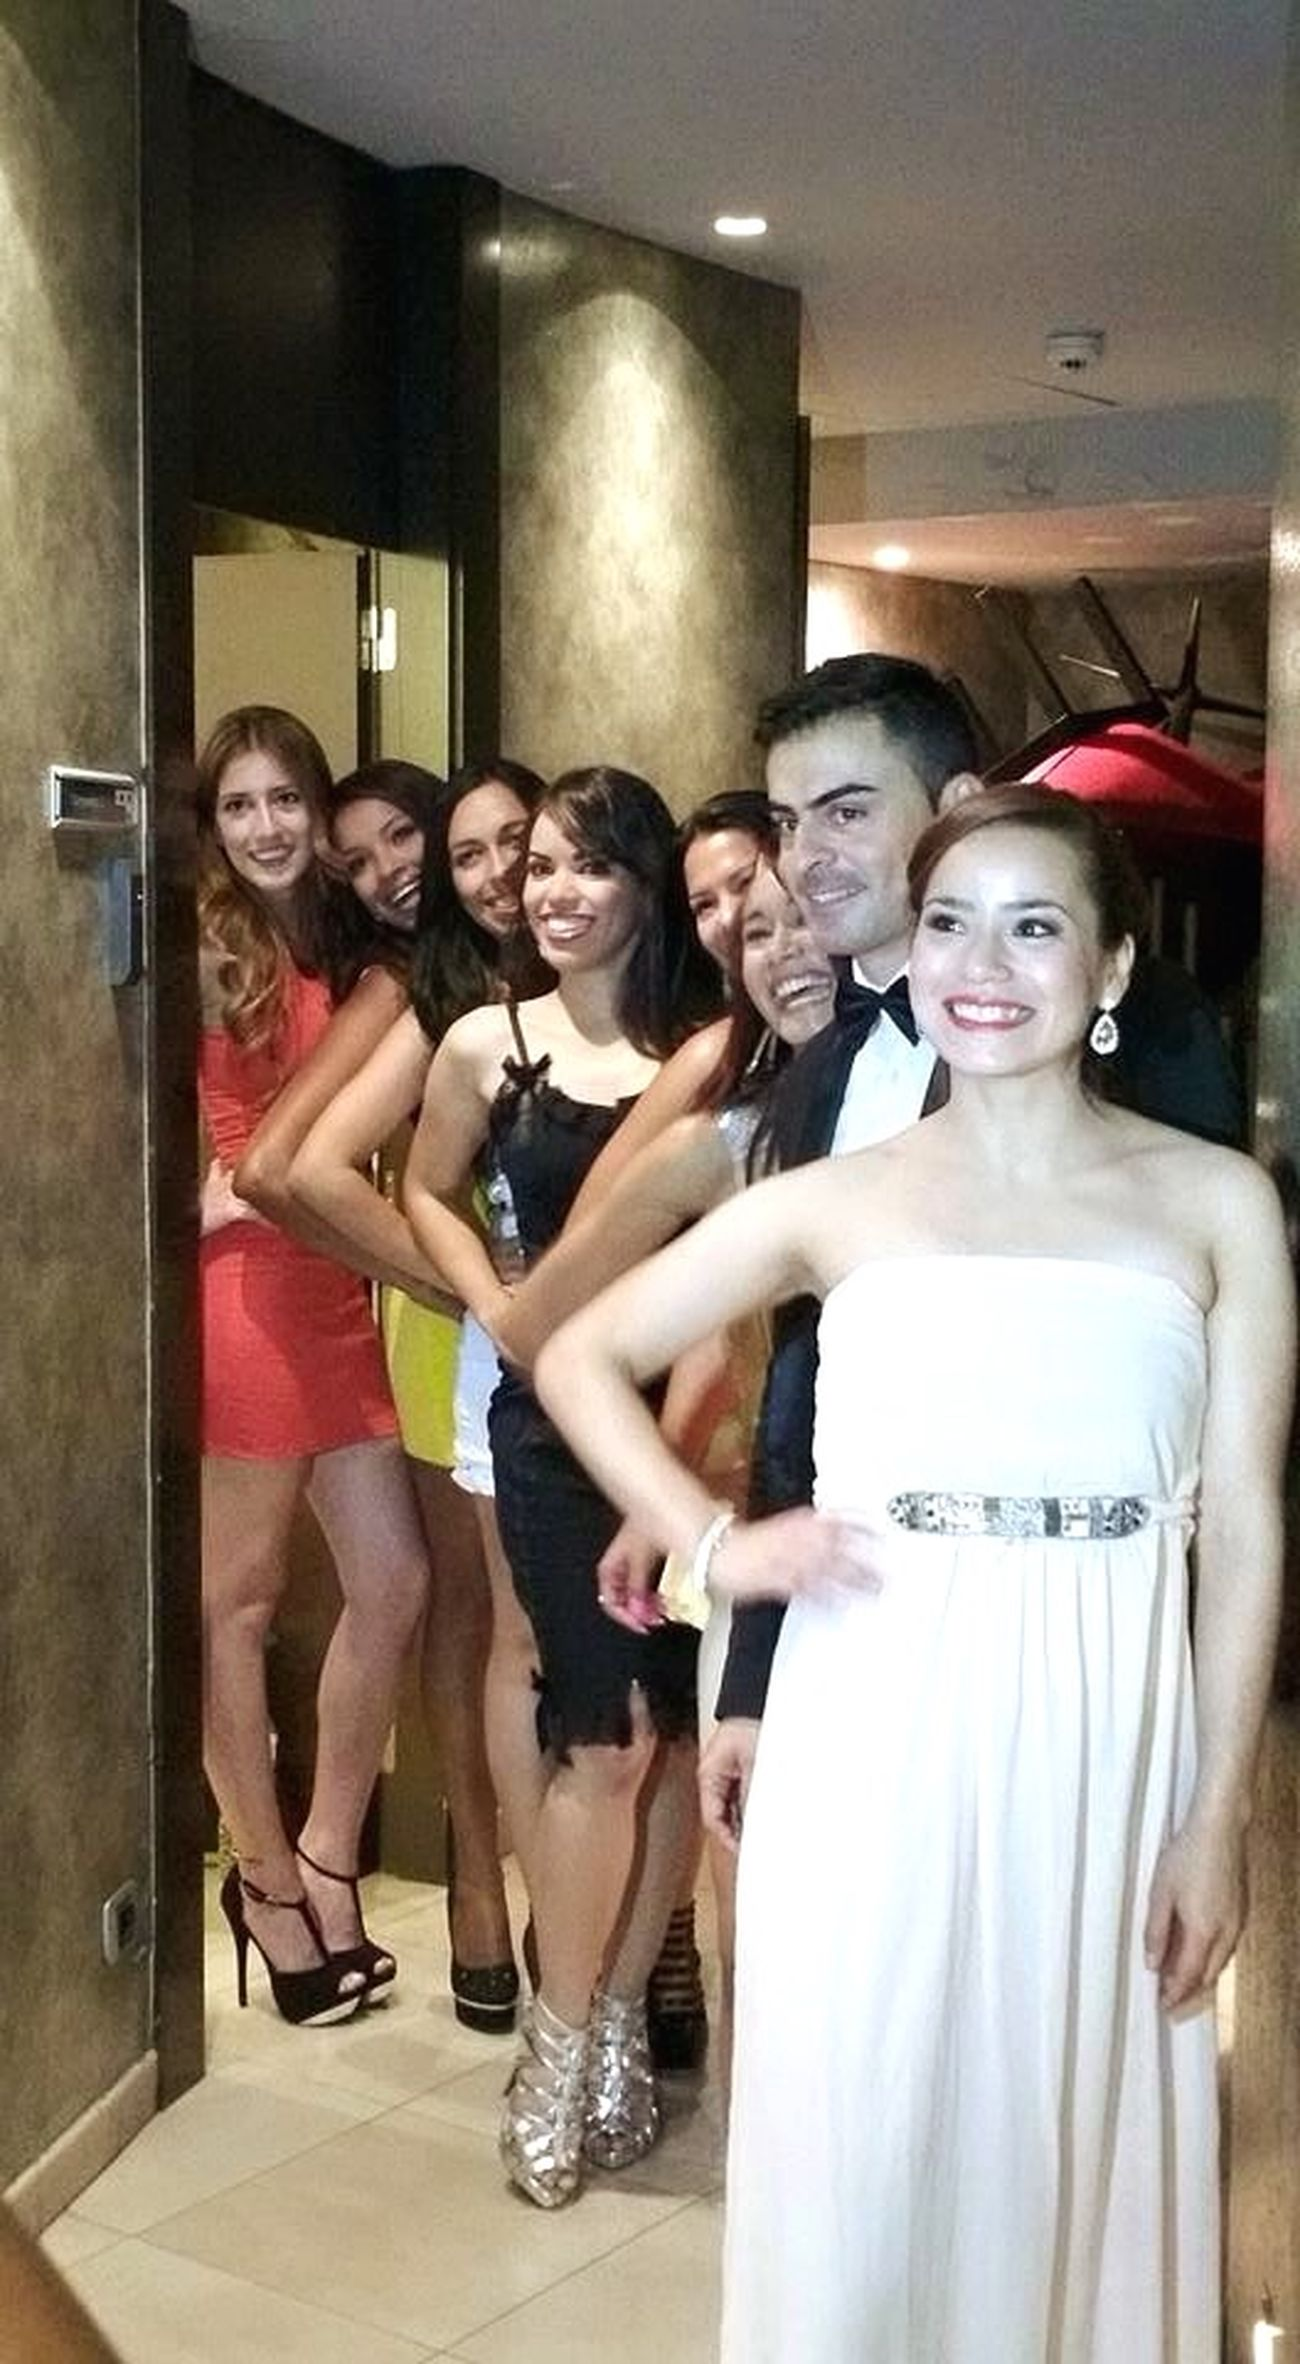 Gala MissChicaLatina2015 Models Model Backstage